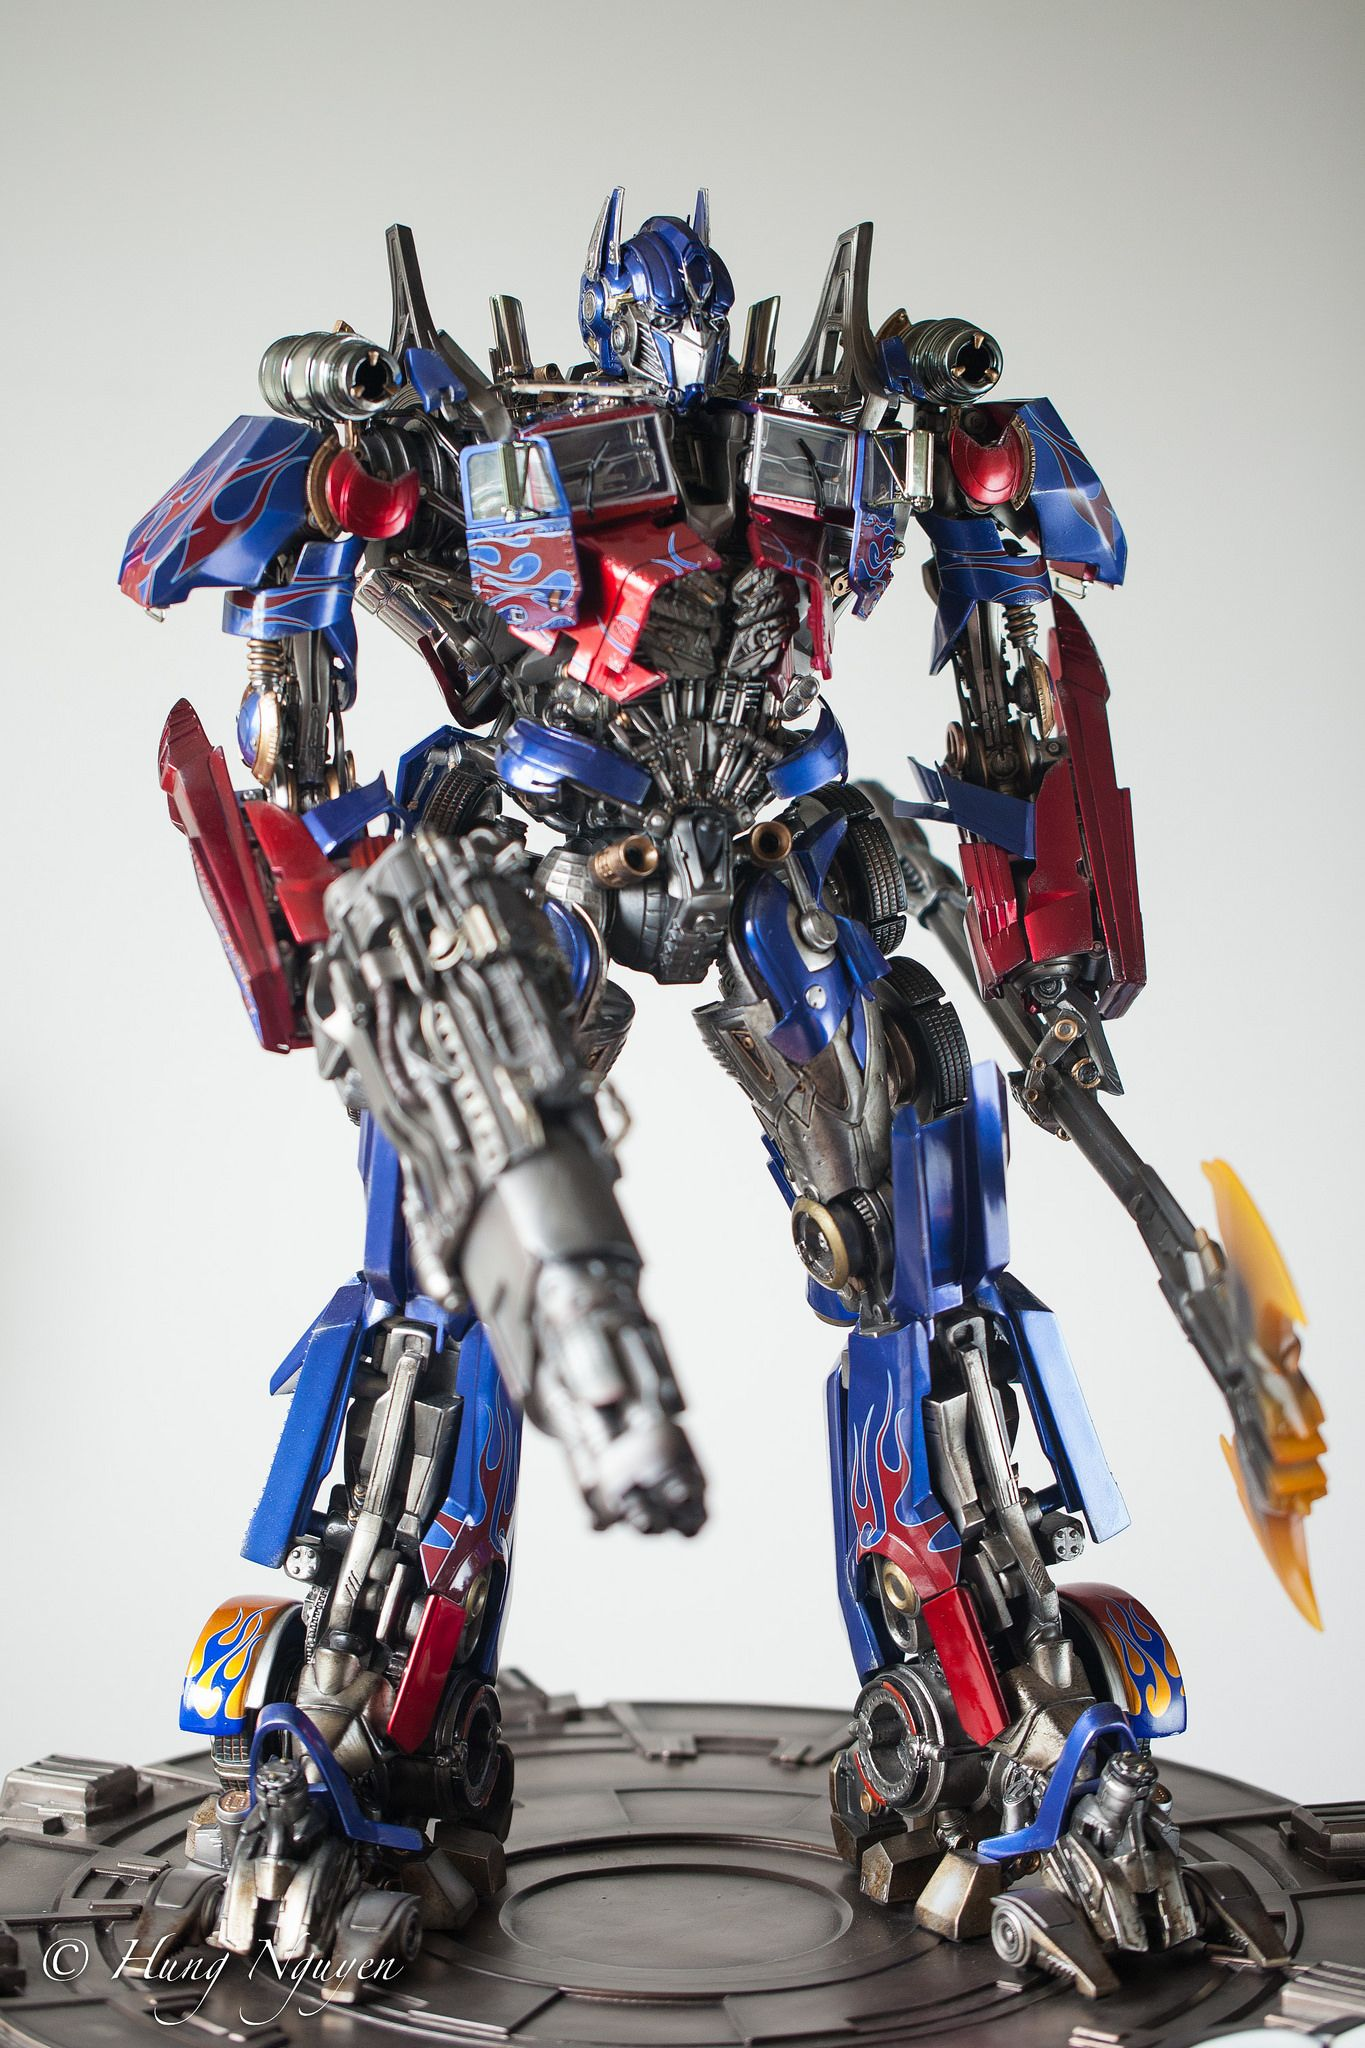 transformers: dark of the moon - optimus prime statue/maquette